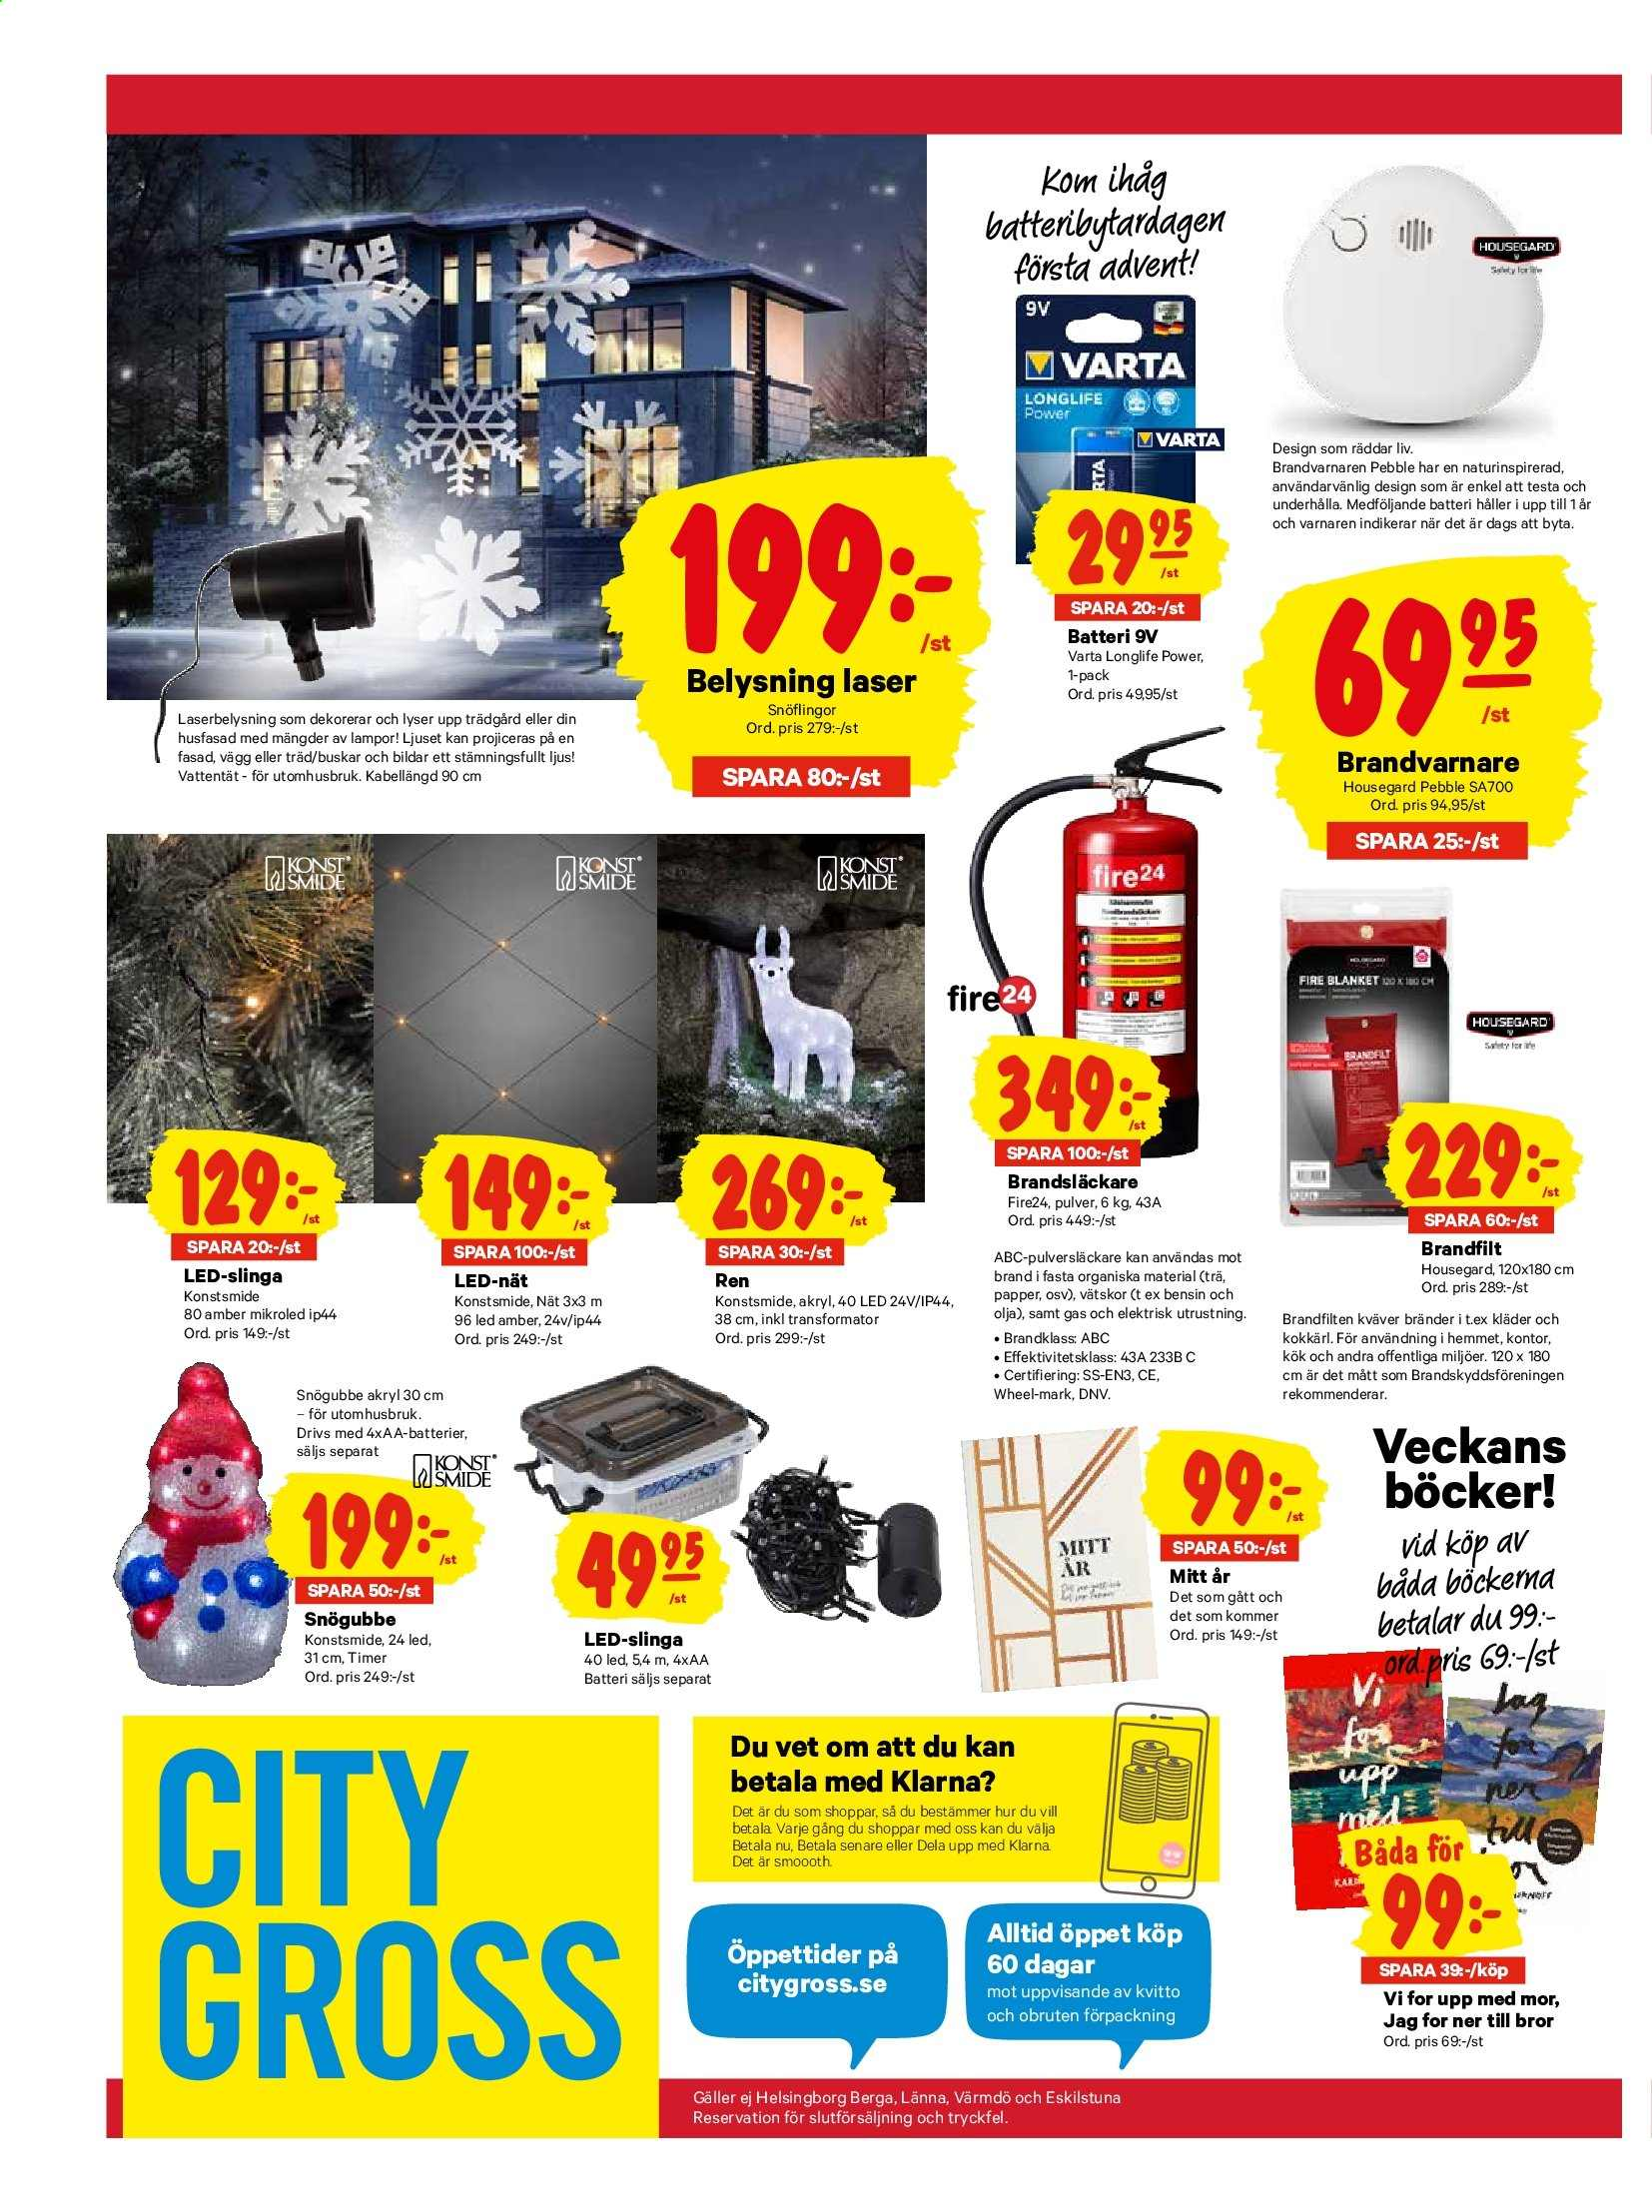 City Gross reklamblad - 25/11 2019 - 1/12 2019. Sida 21.